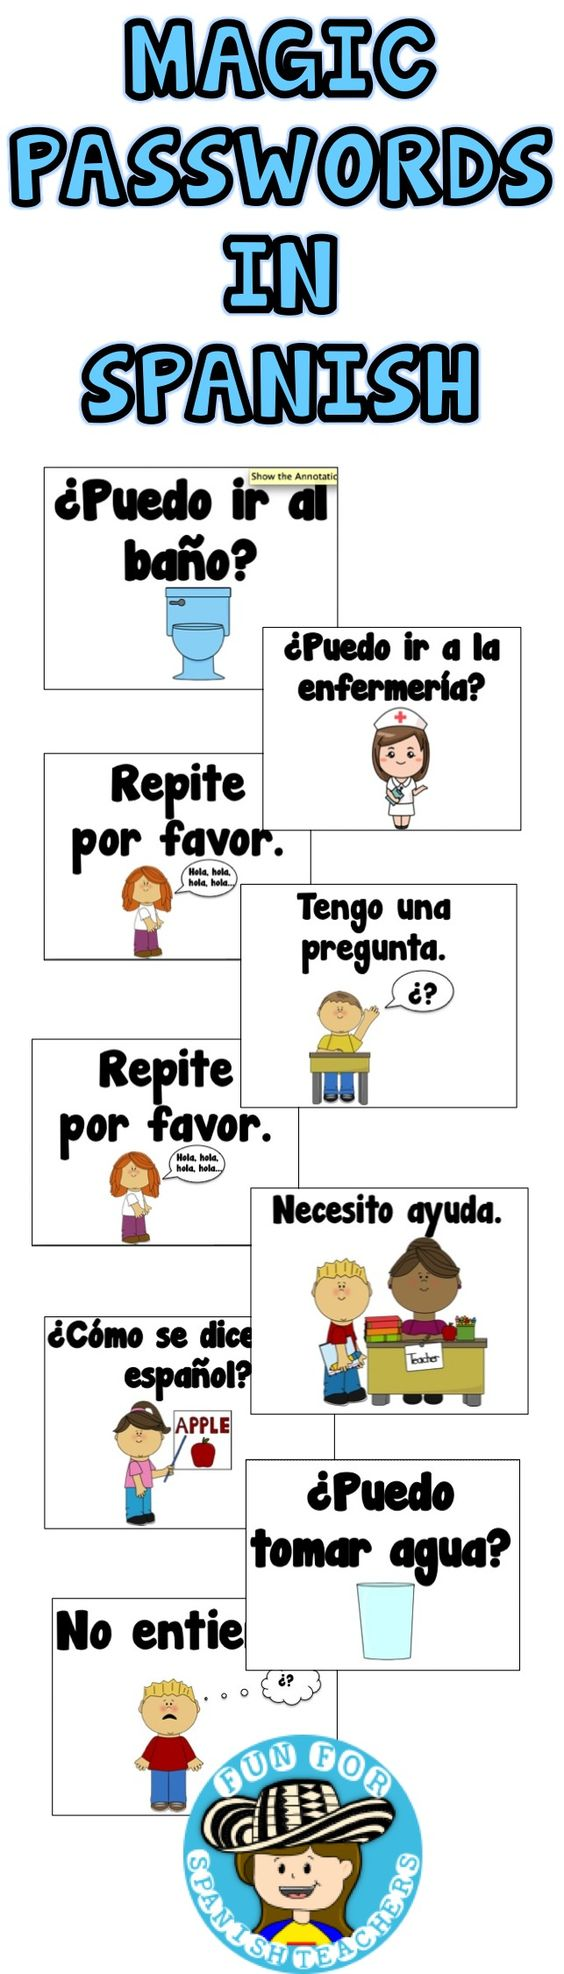 Free cards to help students remember magic passwords in Spanish!